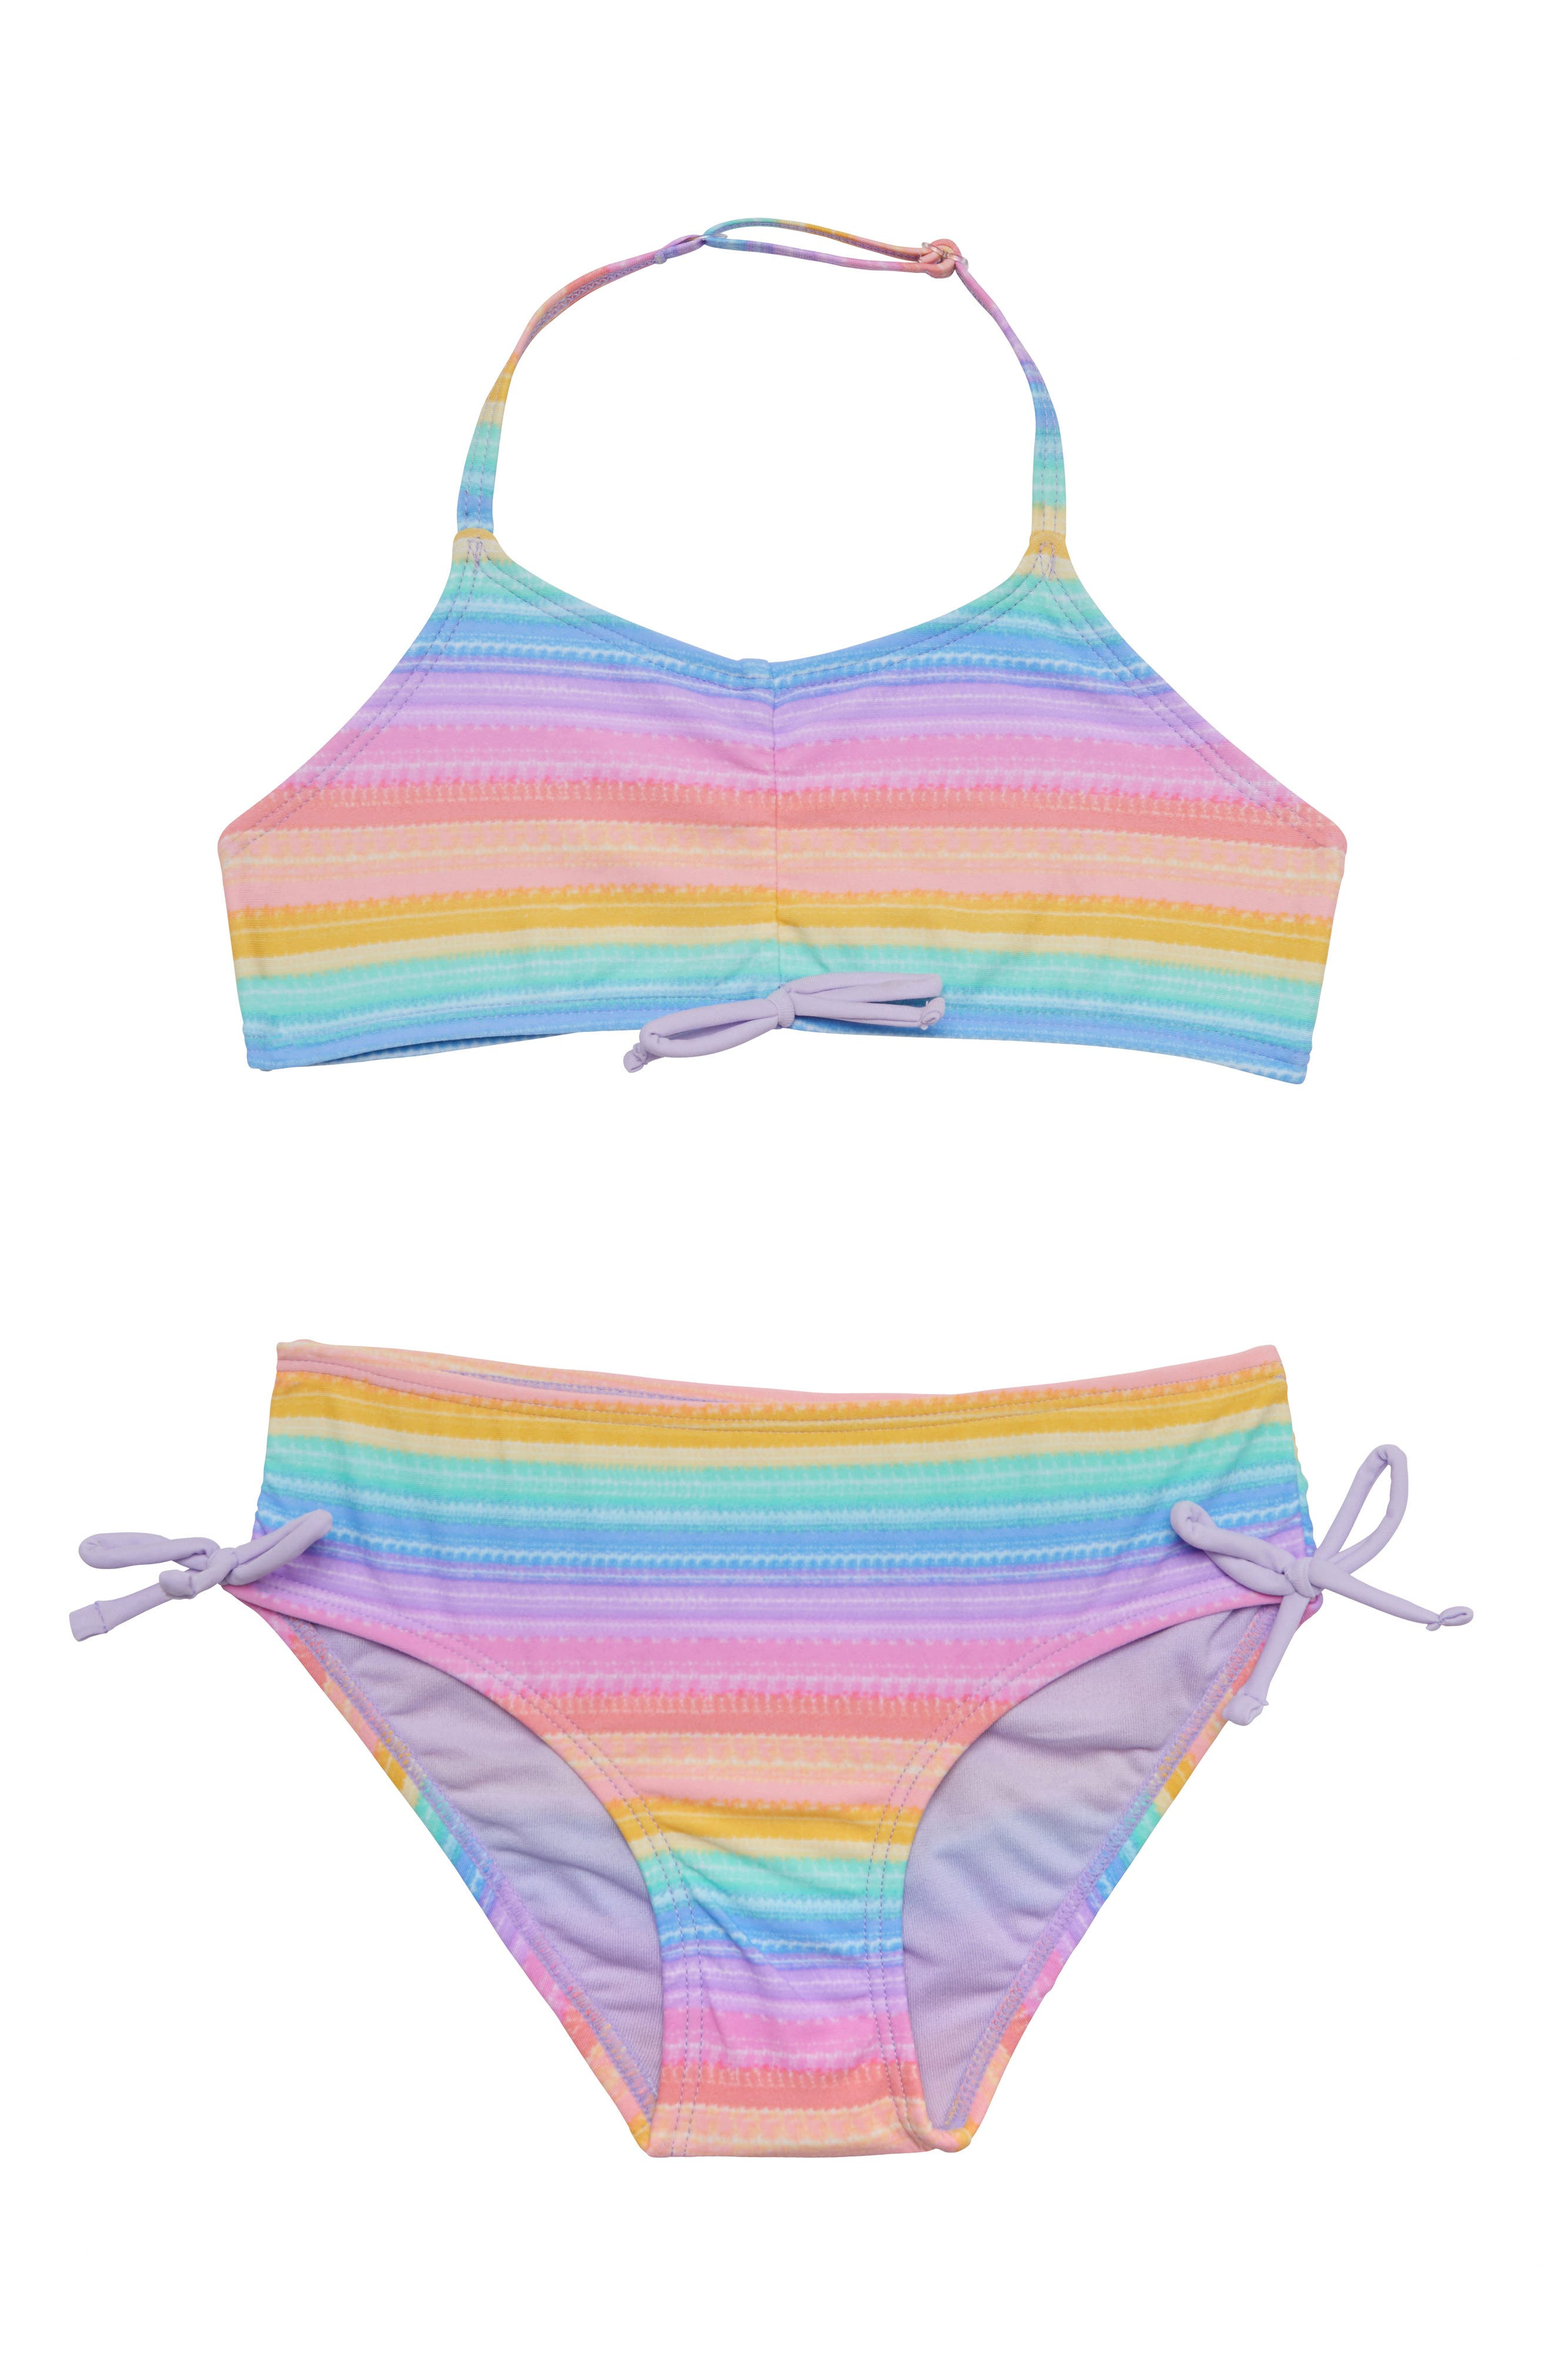 Girls Two Piece Swimsuits Rainbow Bikini Sets Adjustable Strap Bathing Suits